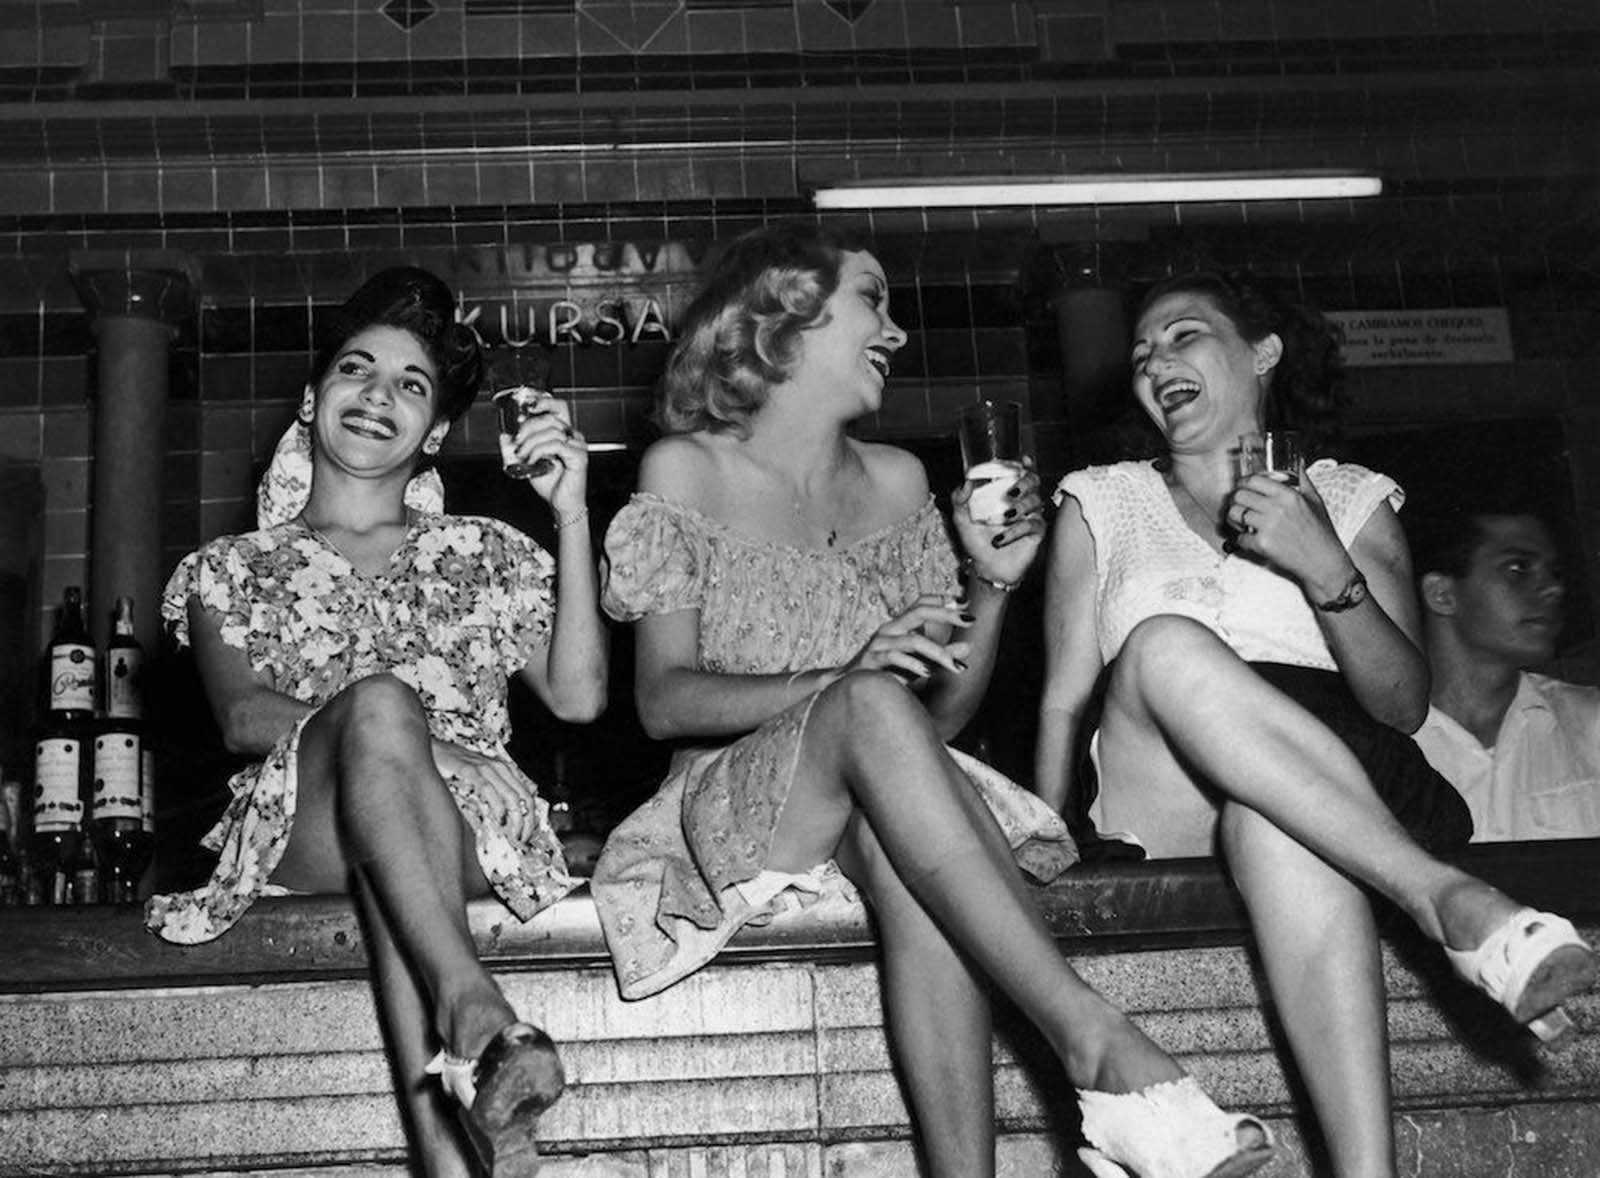 Three women perched on the bar at the Cabaret Kursal nightclub in Havana. 1950.